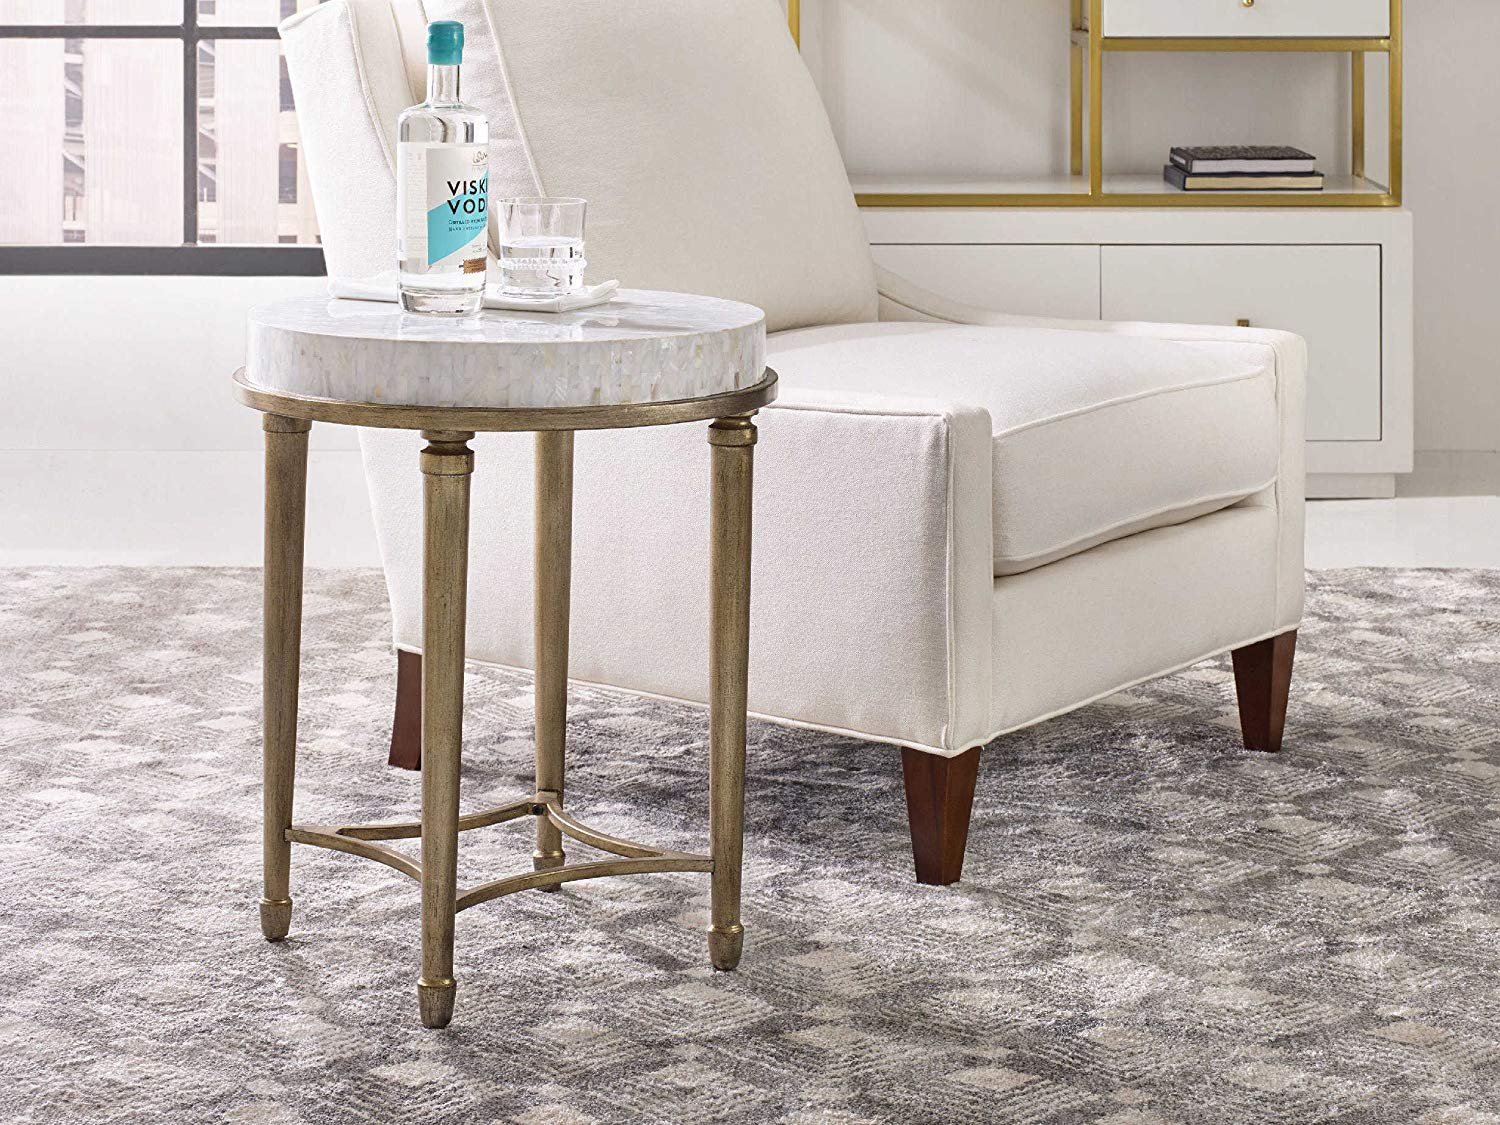 hooker furniture cynthia rowley aura round shell top accent table with power end kitchen dining cherry corner room essentials patio ashley nesting tables grey metal coffee pottery